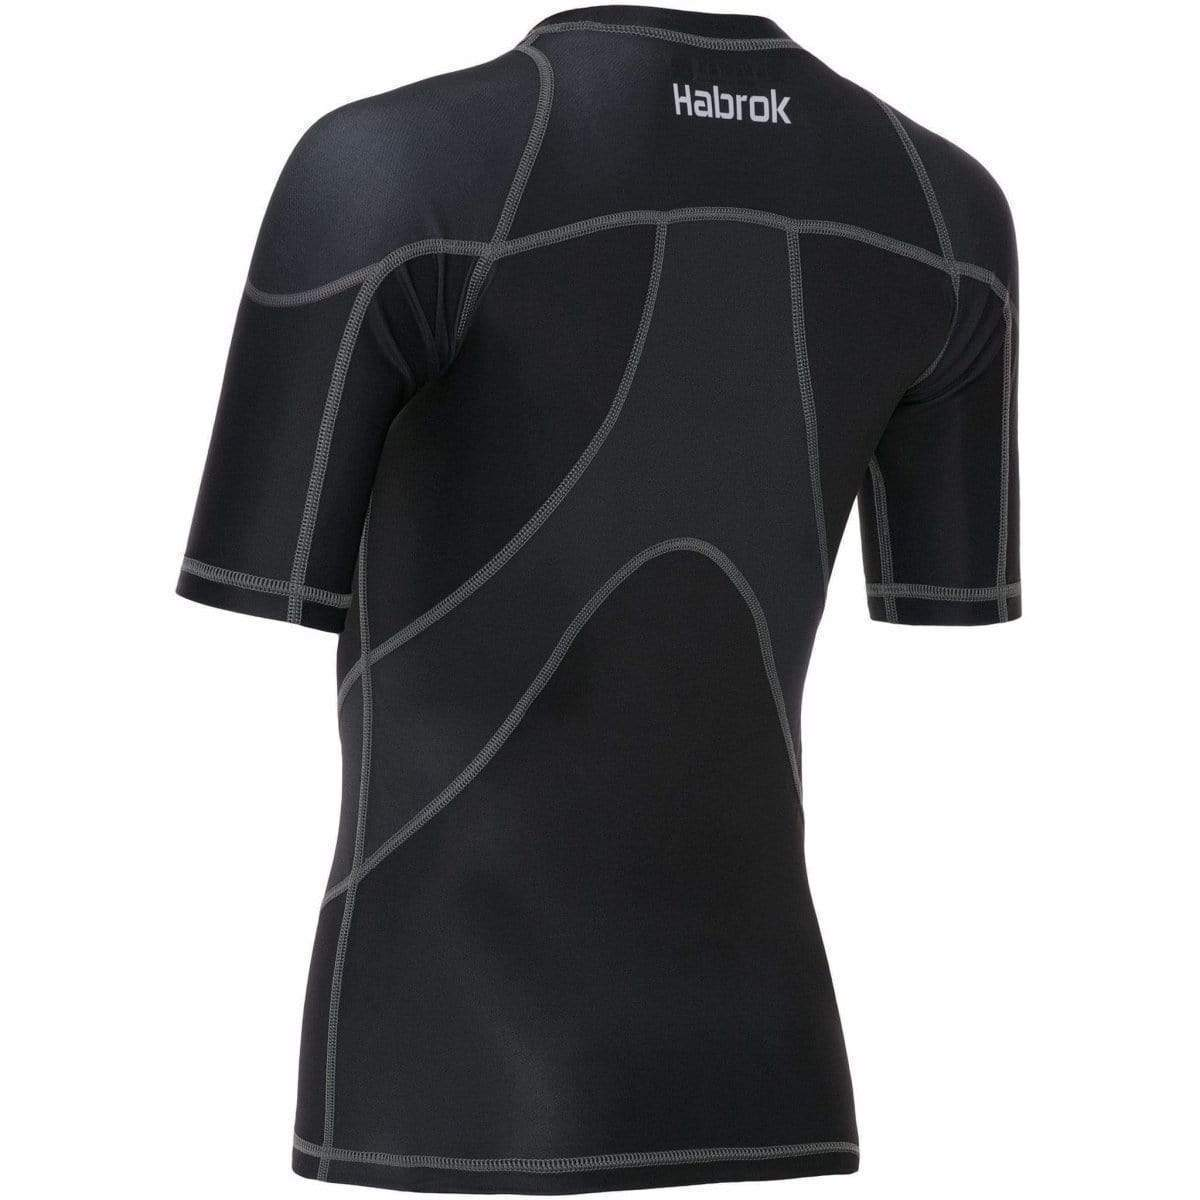 Habrok Rash Guard Pugnator 2.0 | Rash Guard | Women | Half Sleeve | Black